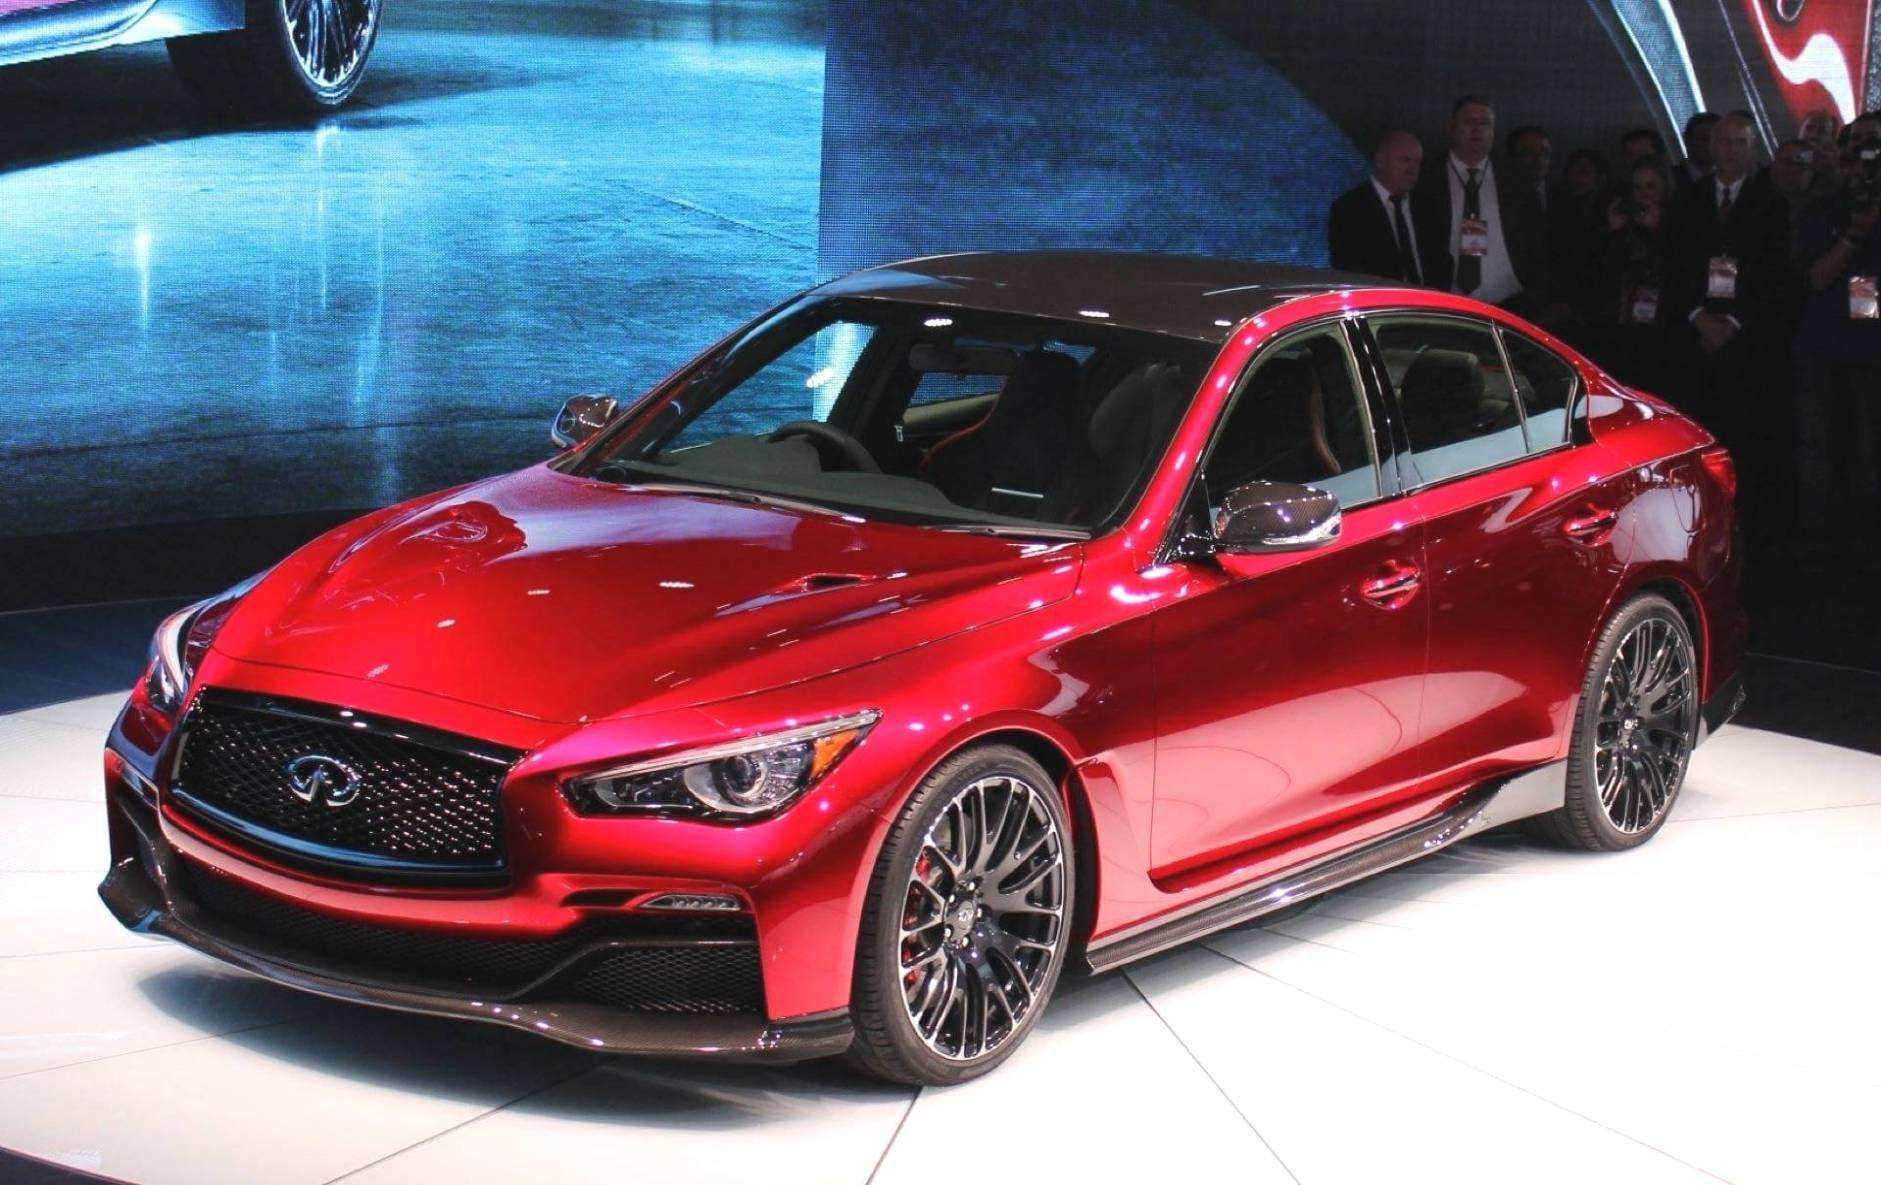 91 Best 2020 Infiniti Q50 Interior Price And Review